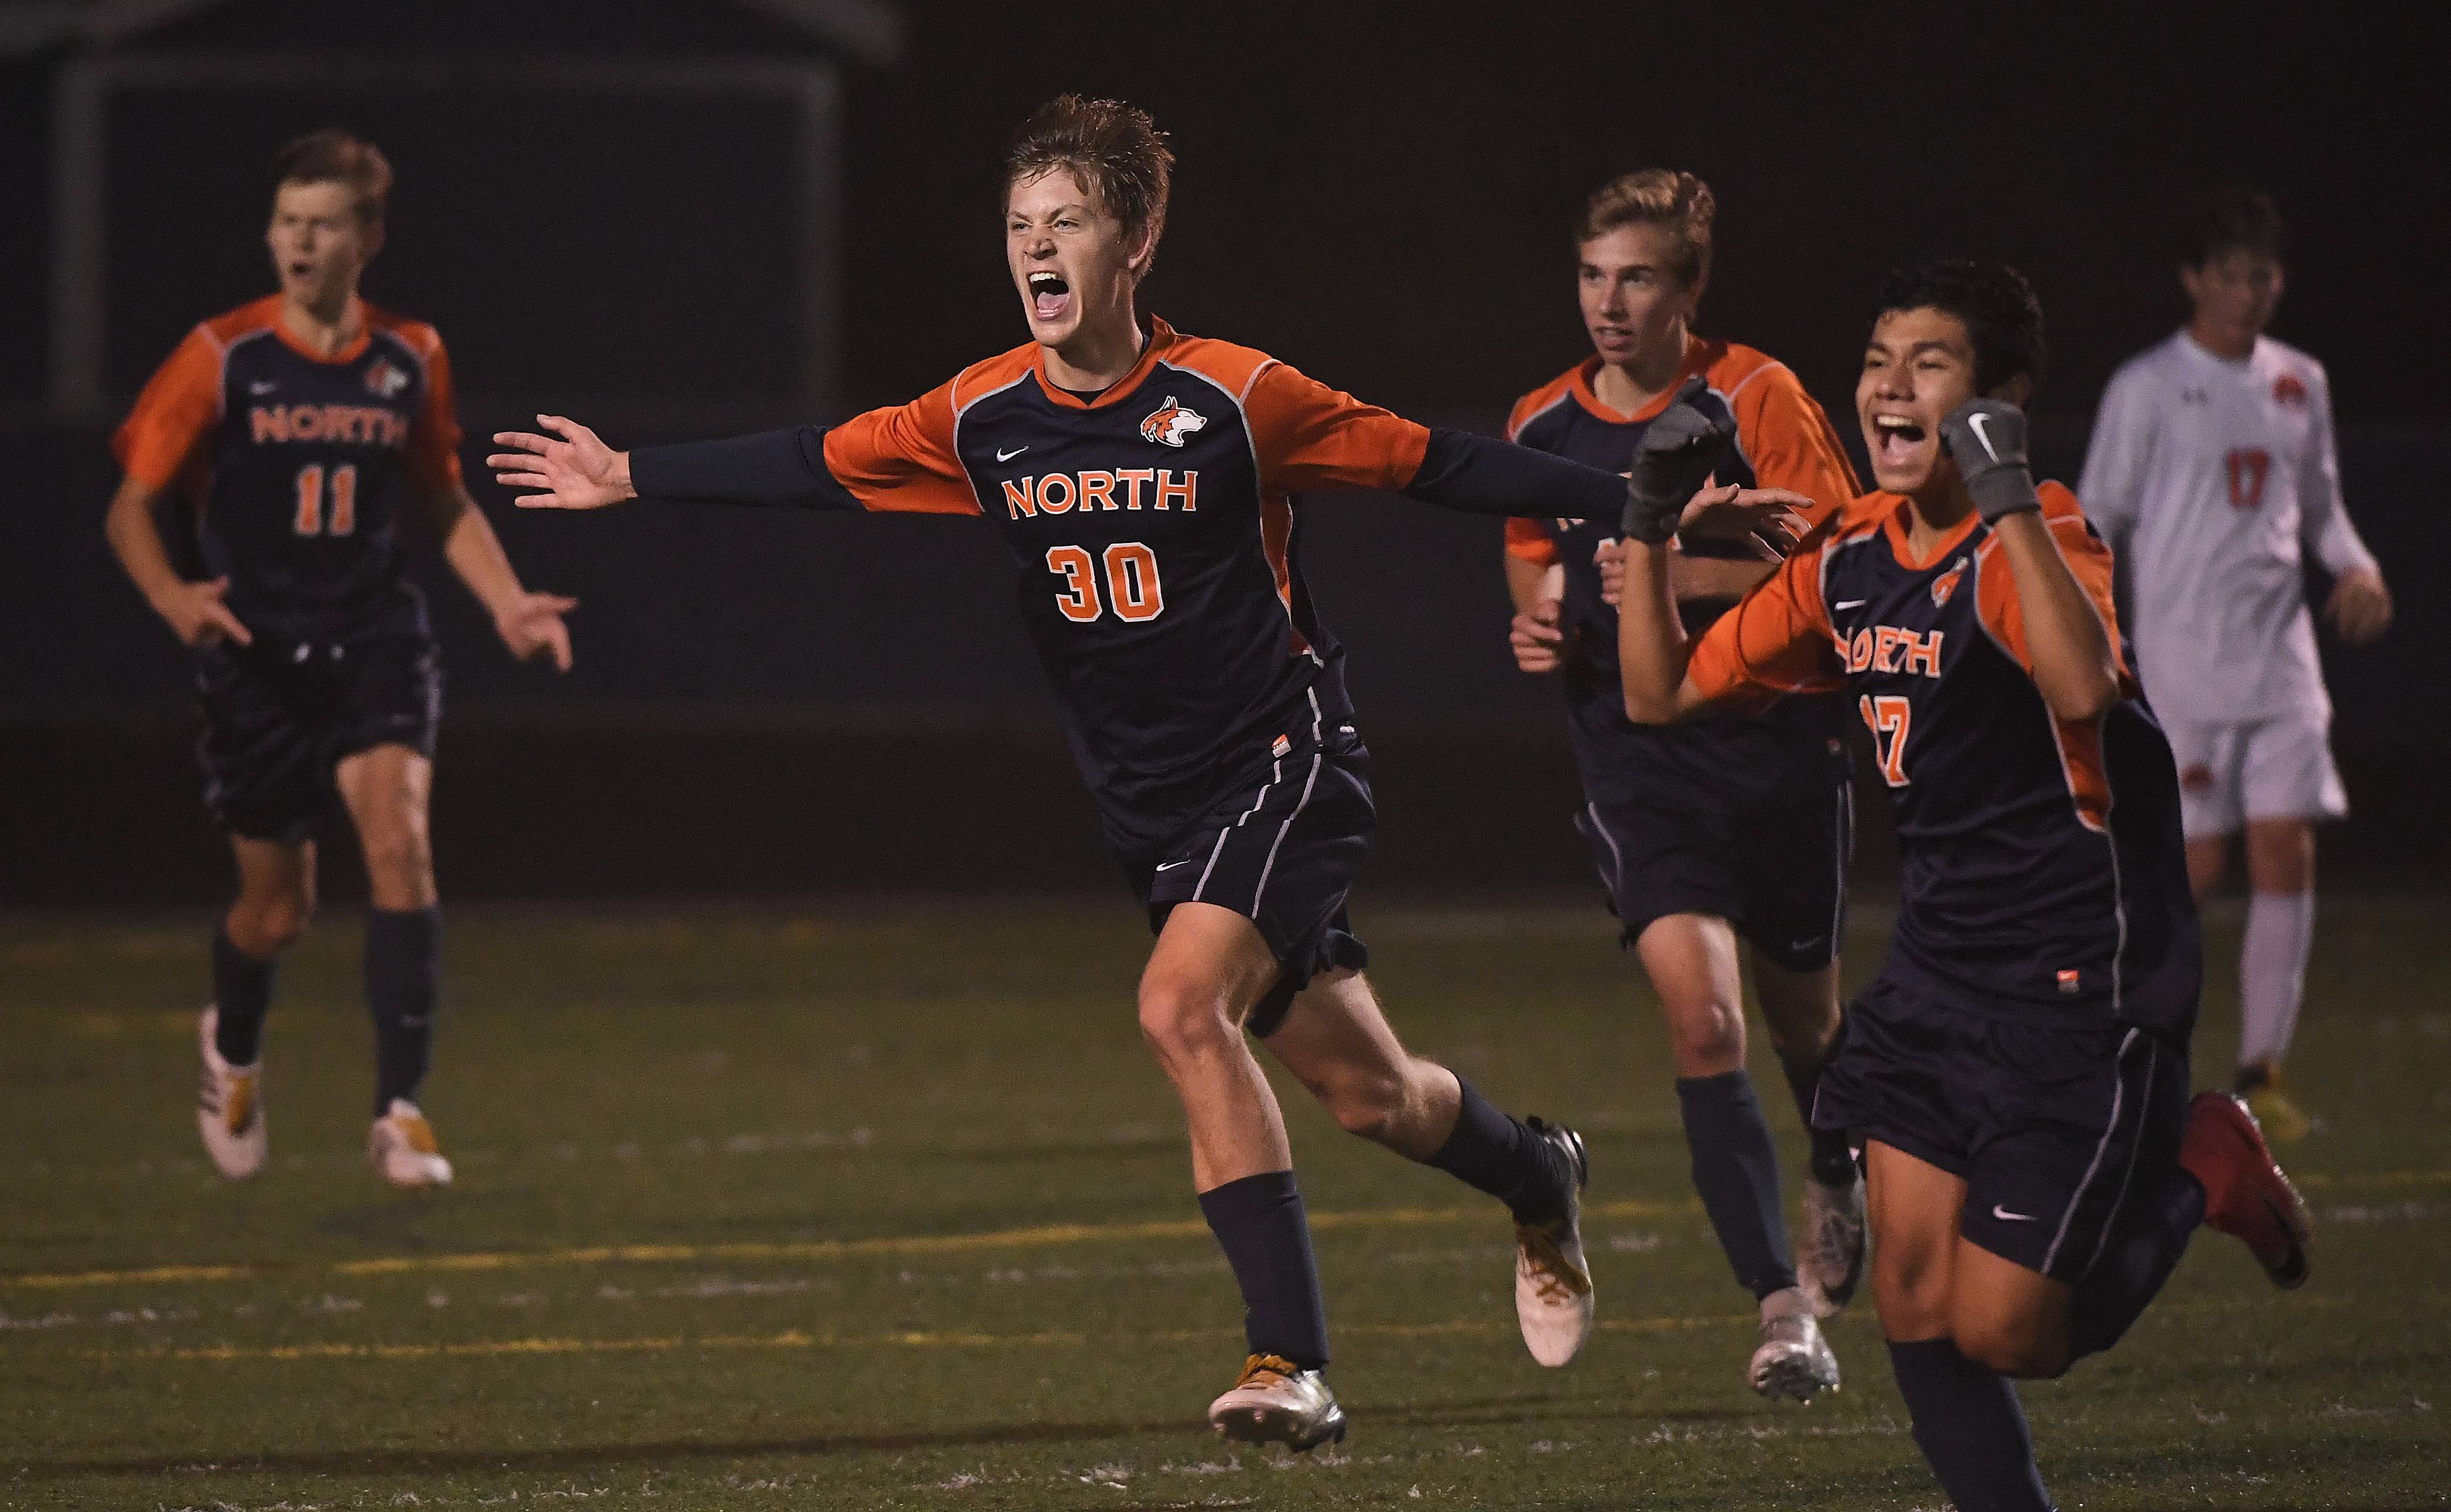 Naperville North's Colin Iverson celebrates his goal for the only score which was enough to top Libertyville for a state soccer championship at Hoffman Estates.